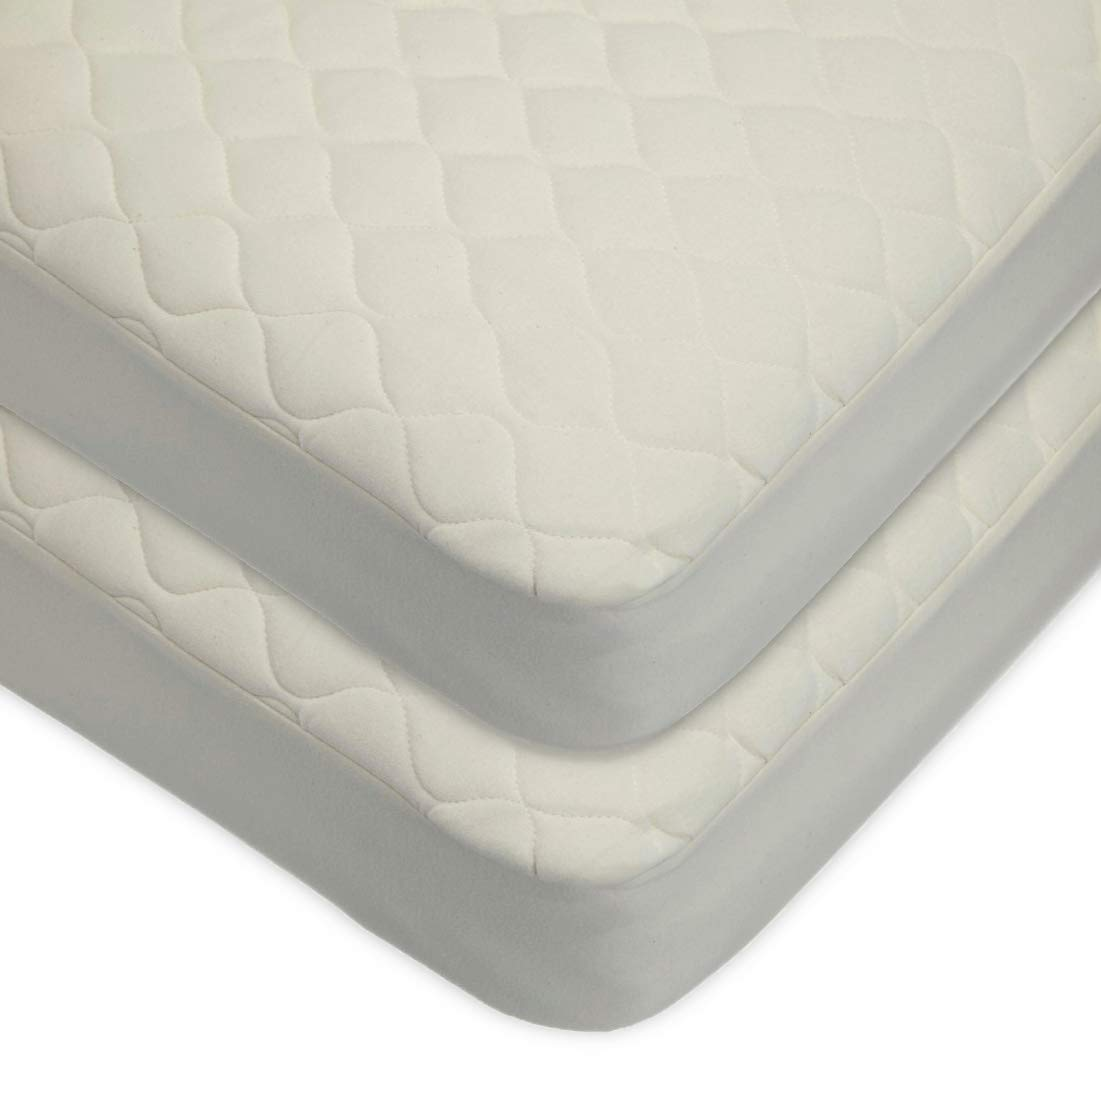 TL Care Twin Pack Waterproof Quilted Crib Size Fitted Mattress Cover Made with Organic Cotton, Natural Color by TL Care